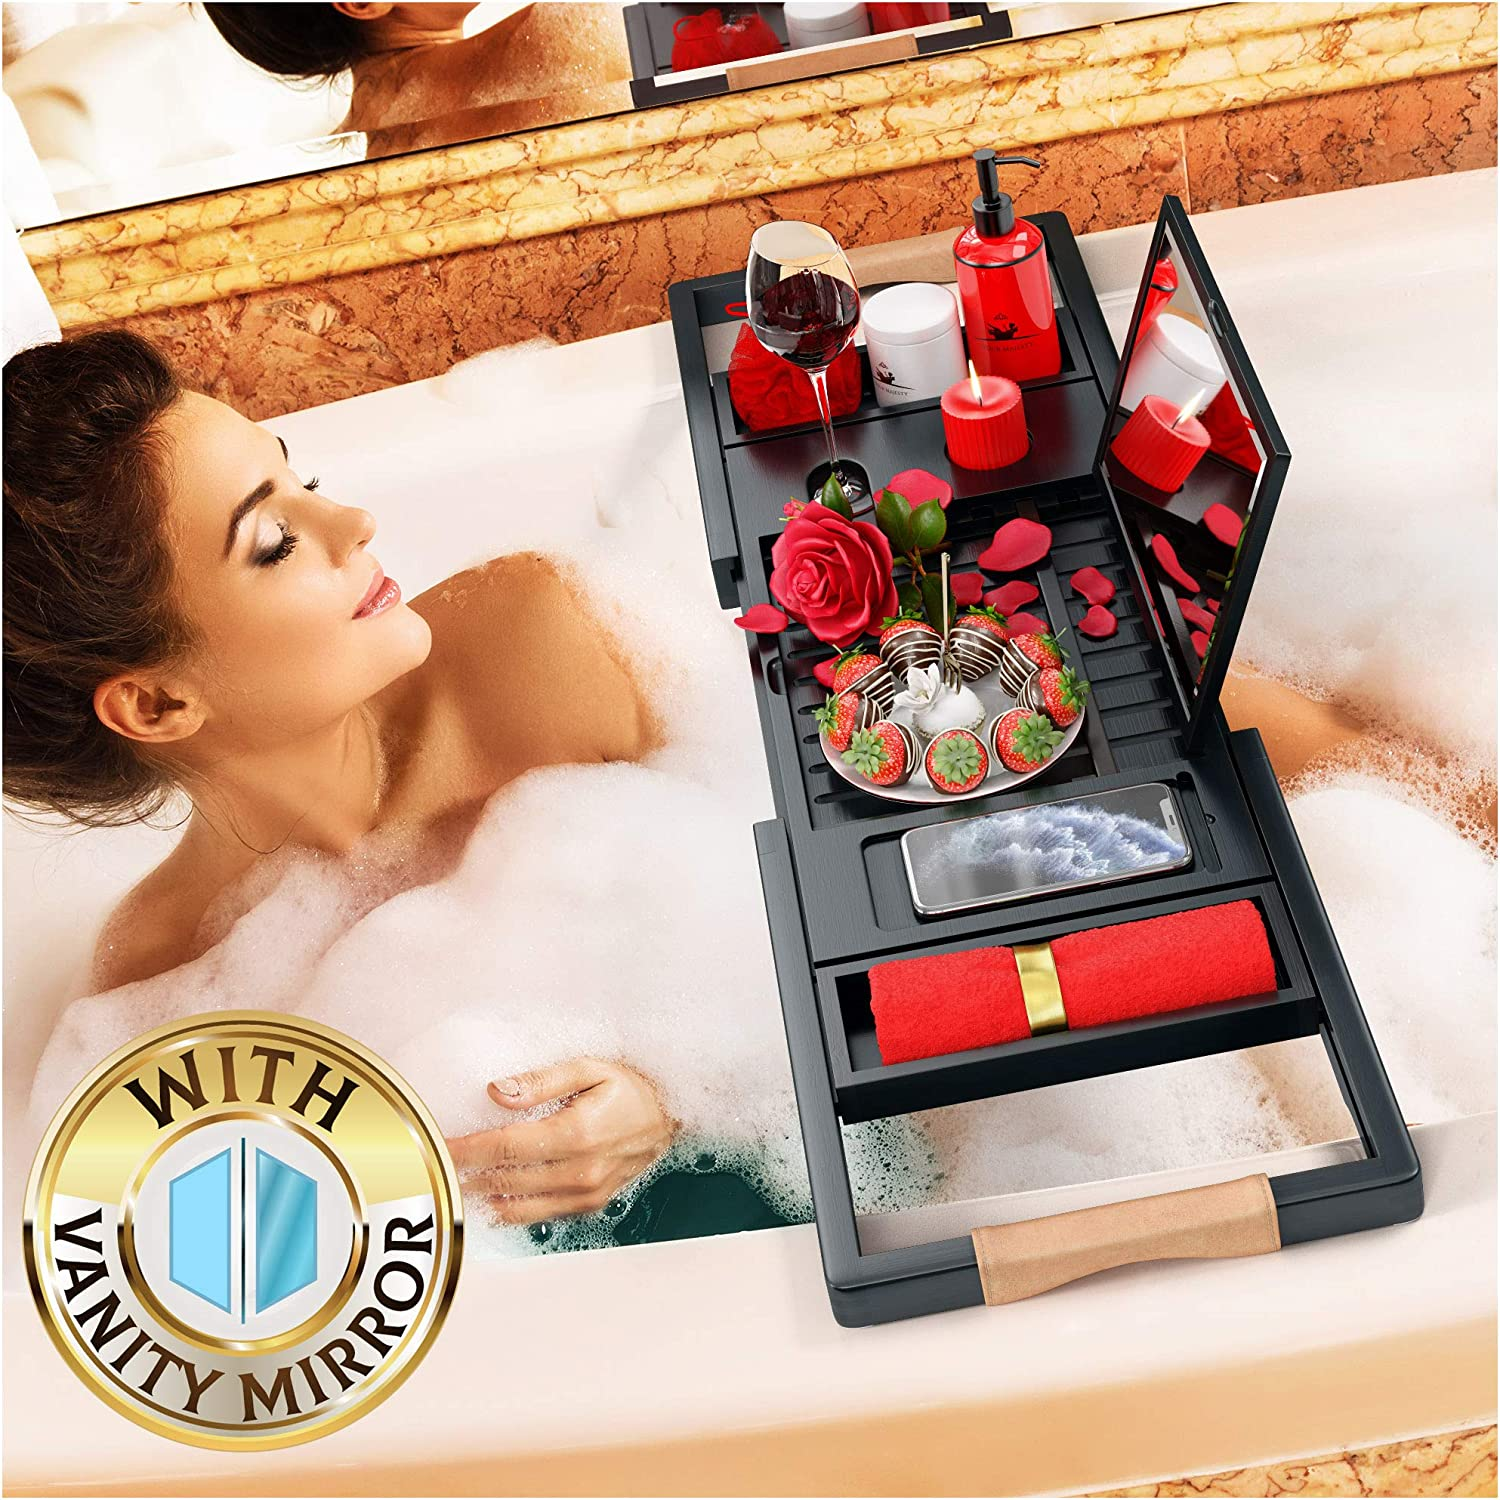 Your Majesty Premium Black Bathtub Tray [with Mirror] 1-2 Adults Expandable Bamboo Bath Tray, Beautiful Gift Box, Fits Any Tub - Holds Book, Wine, Phone, Ipad, Laptop